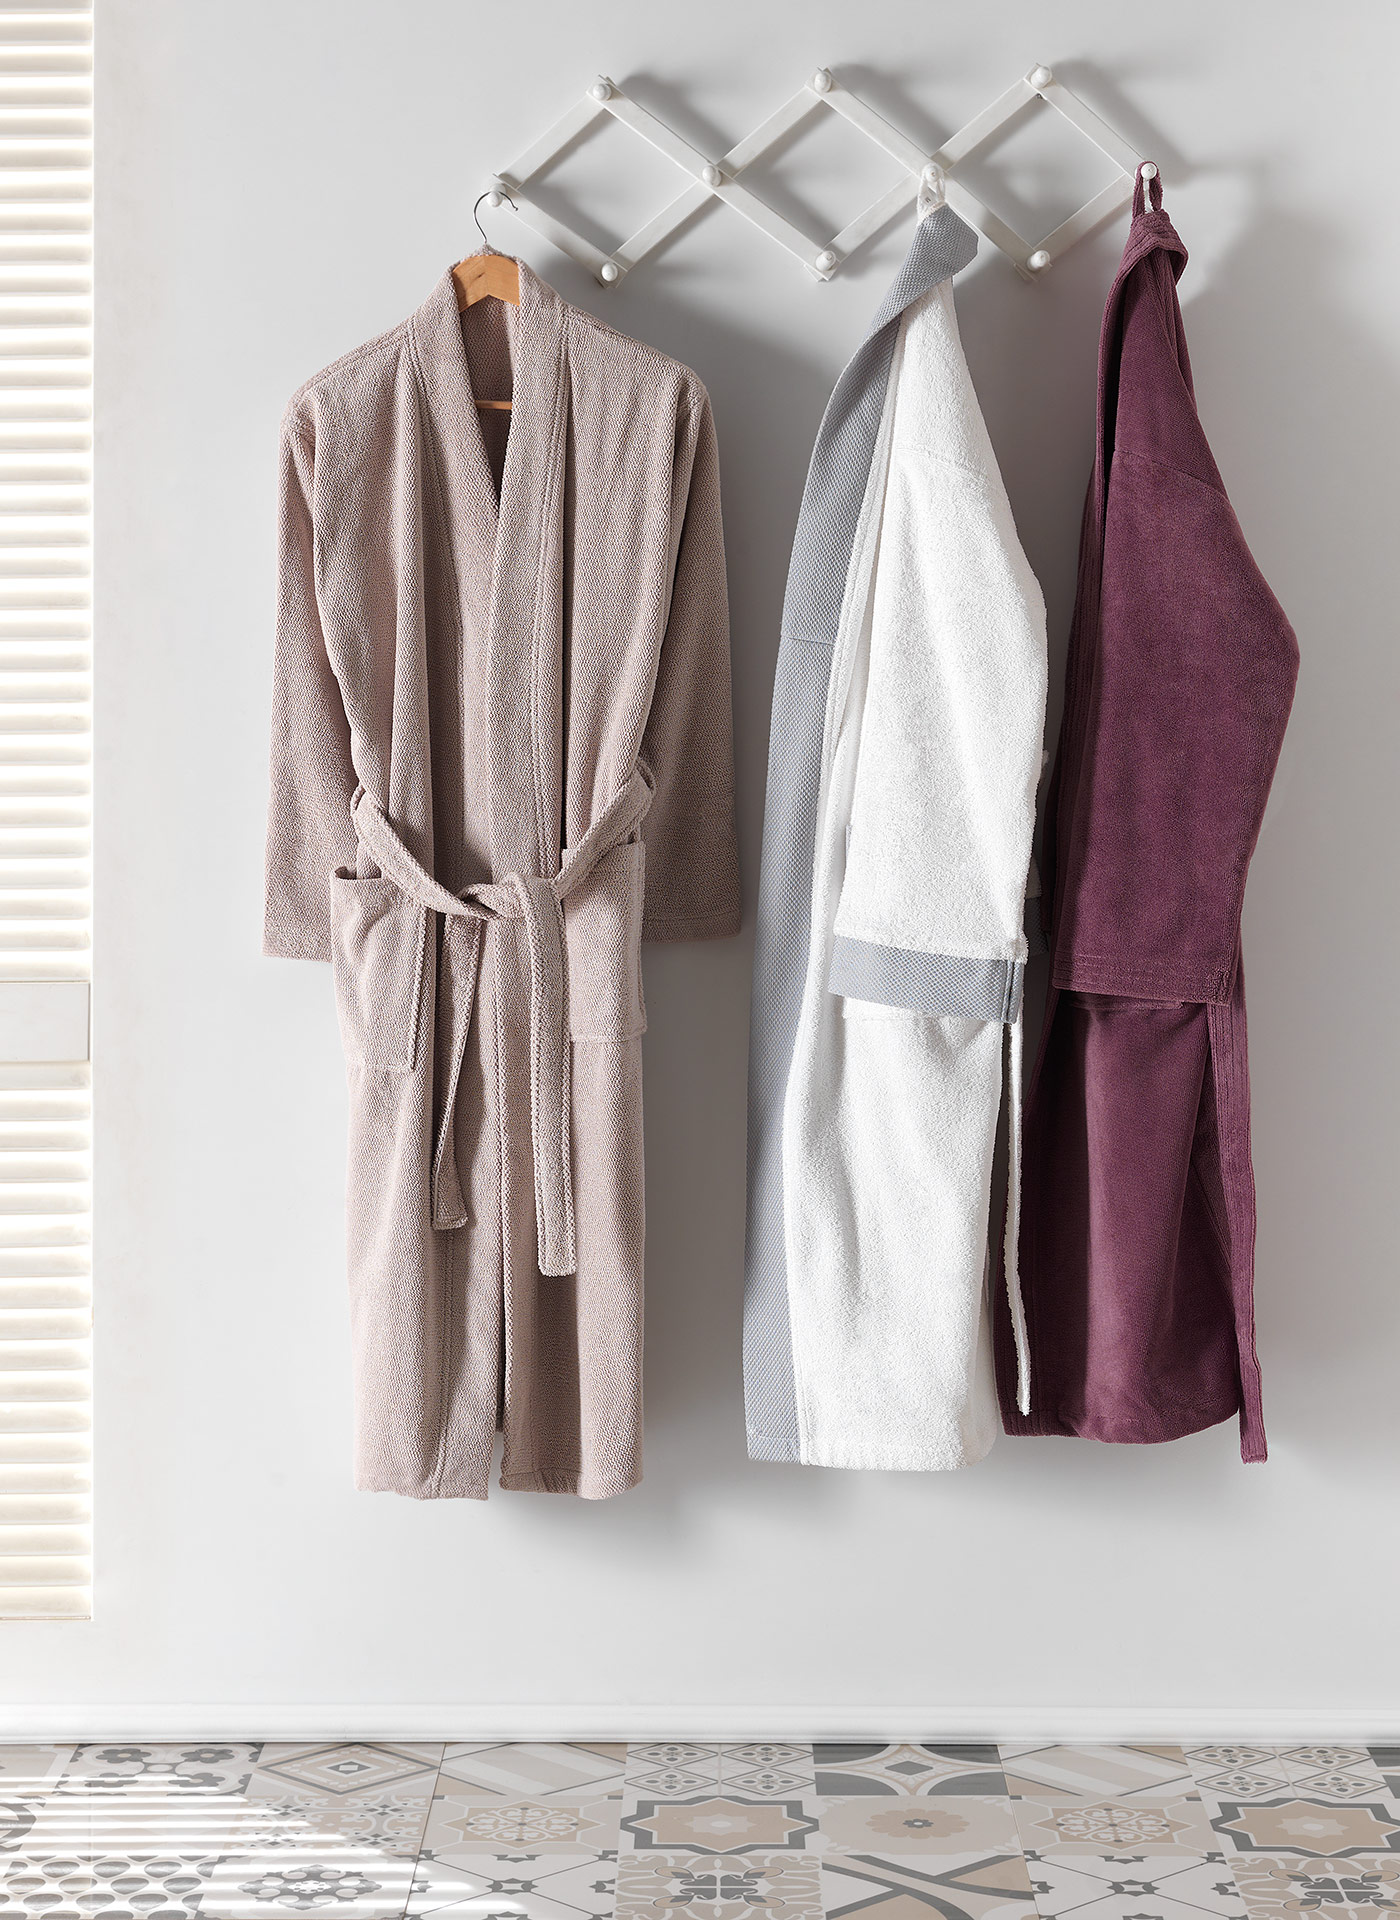 Kımıl Tekstil, towel, bathrobe